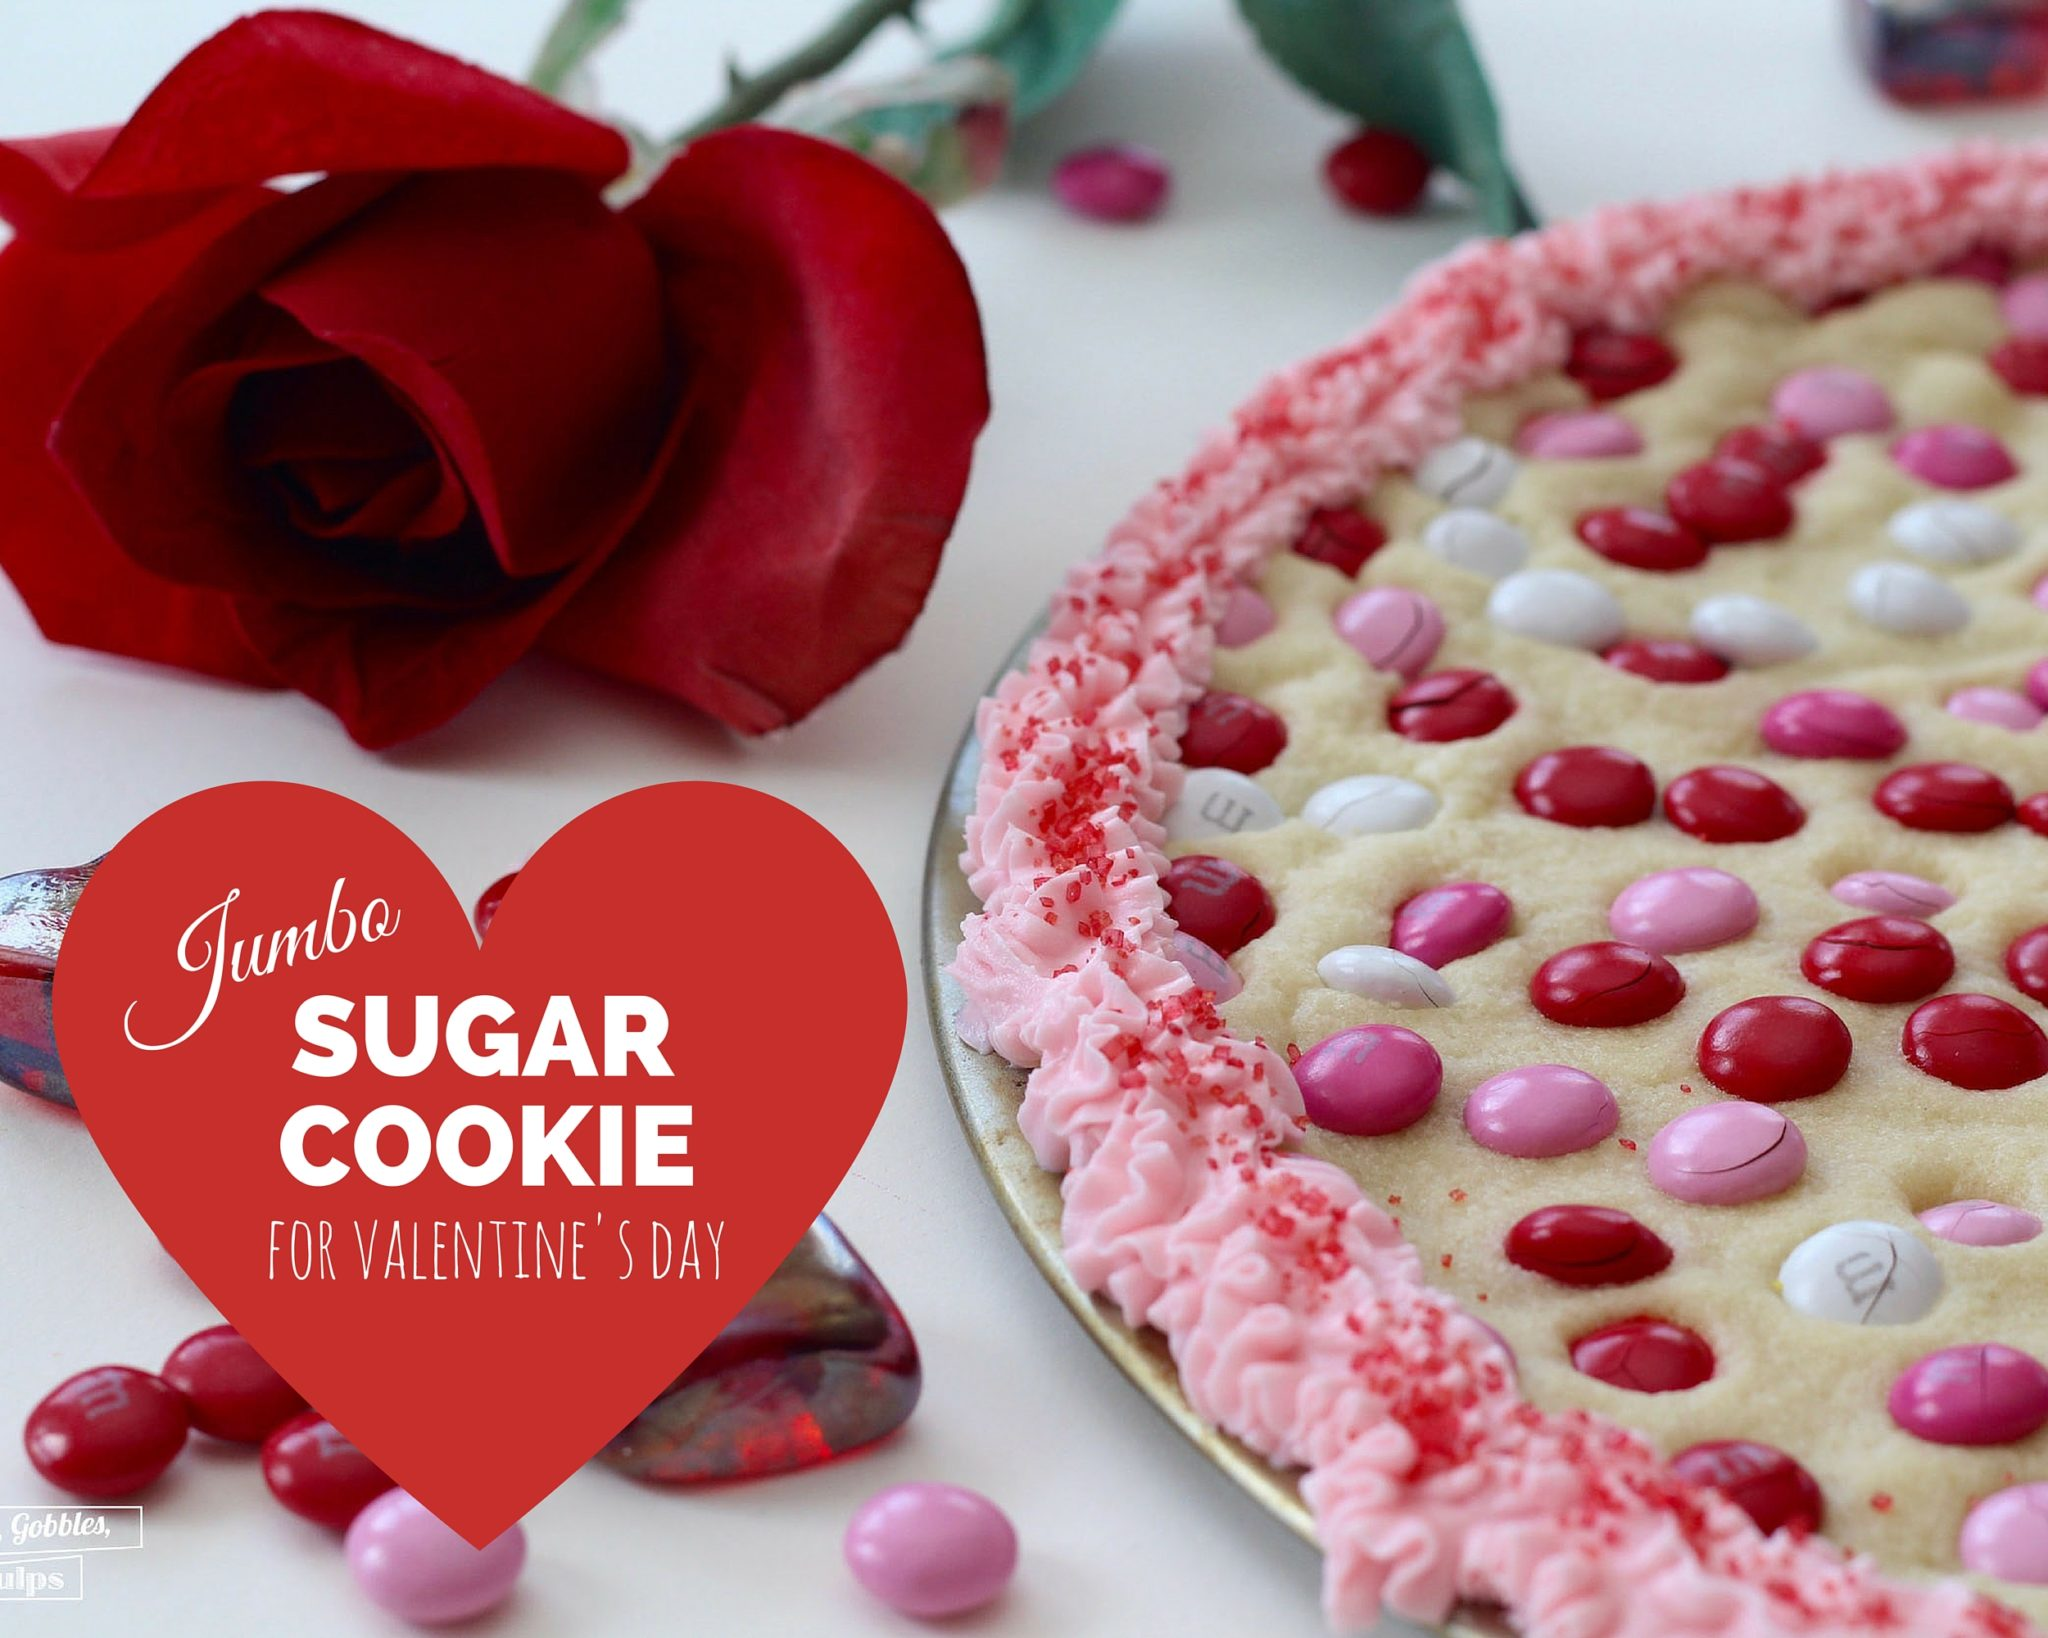 jumbo sugar cookie for valentines day